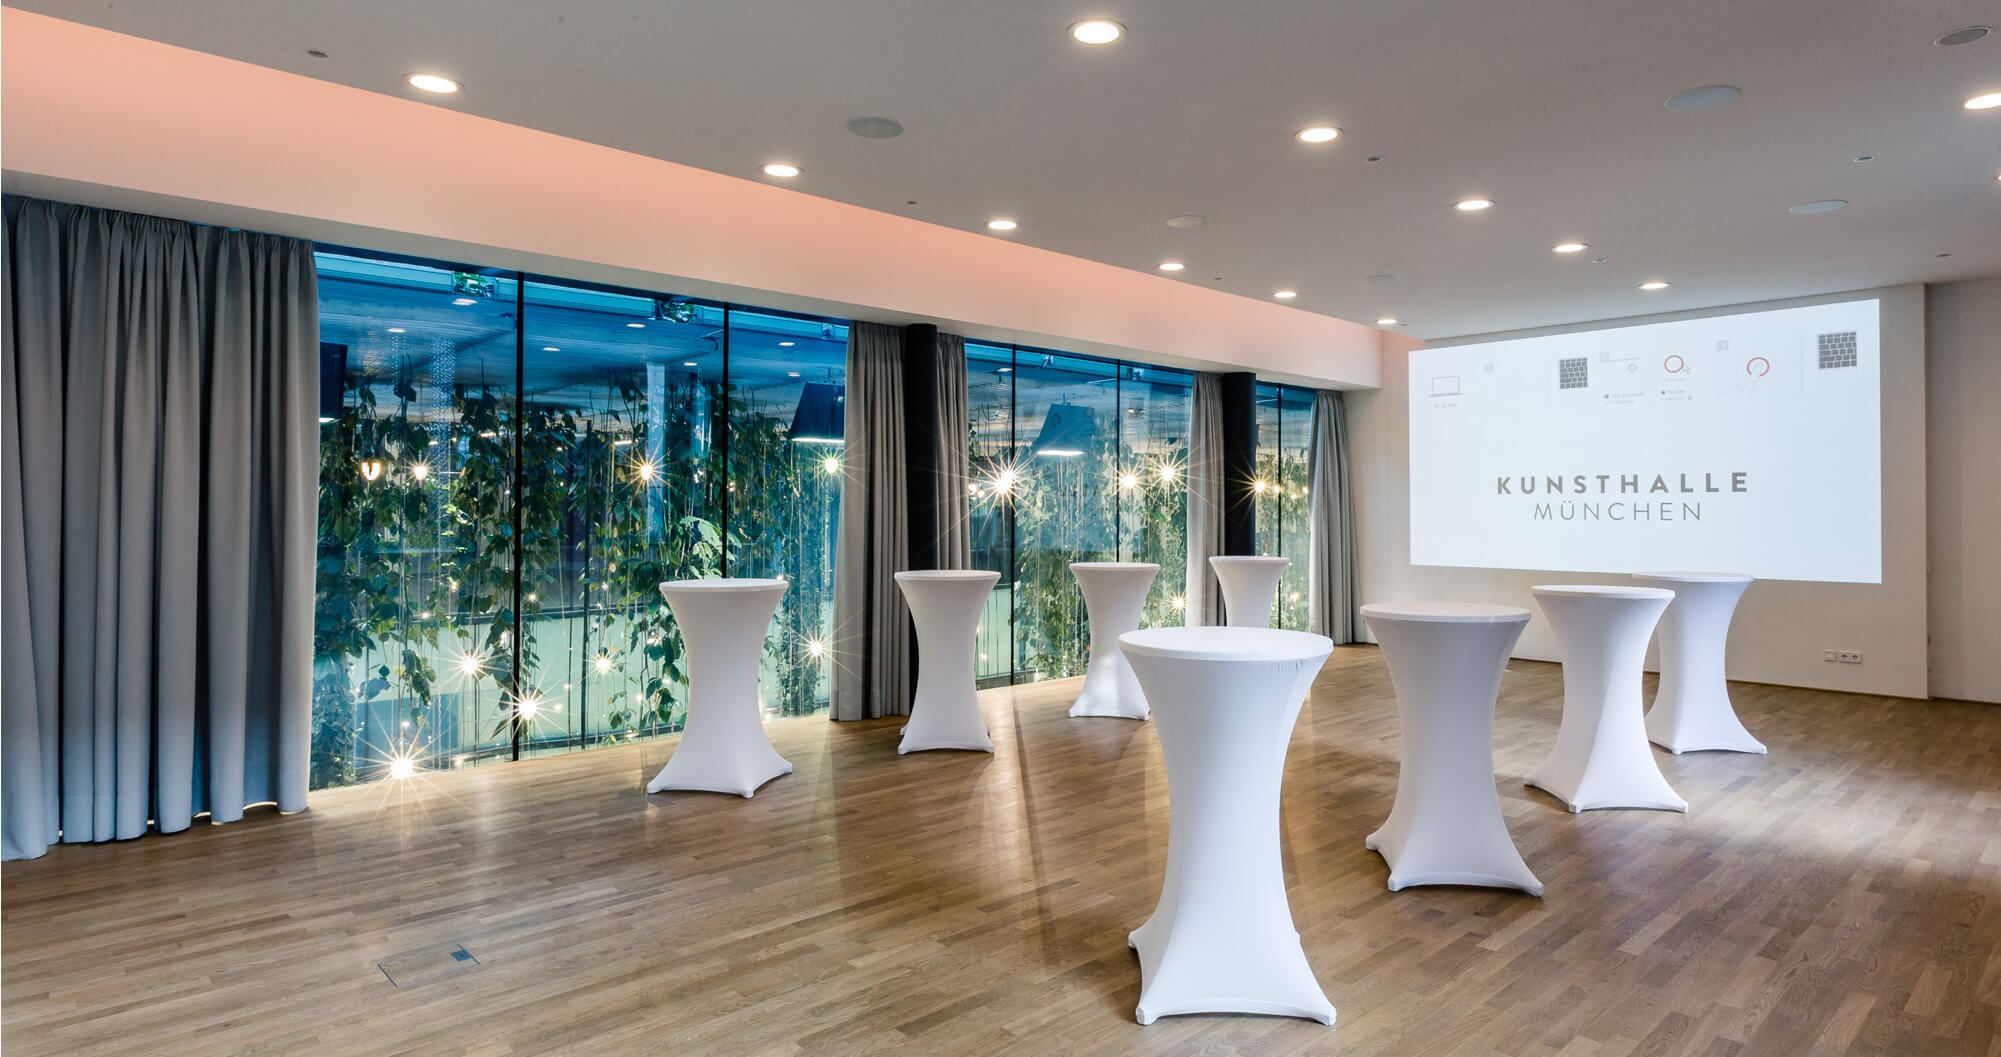 Presentation Room with a projector and high tables